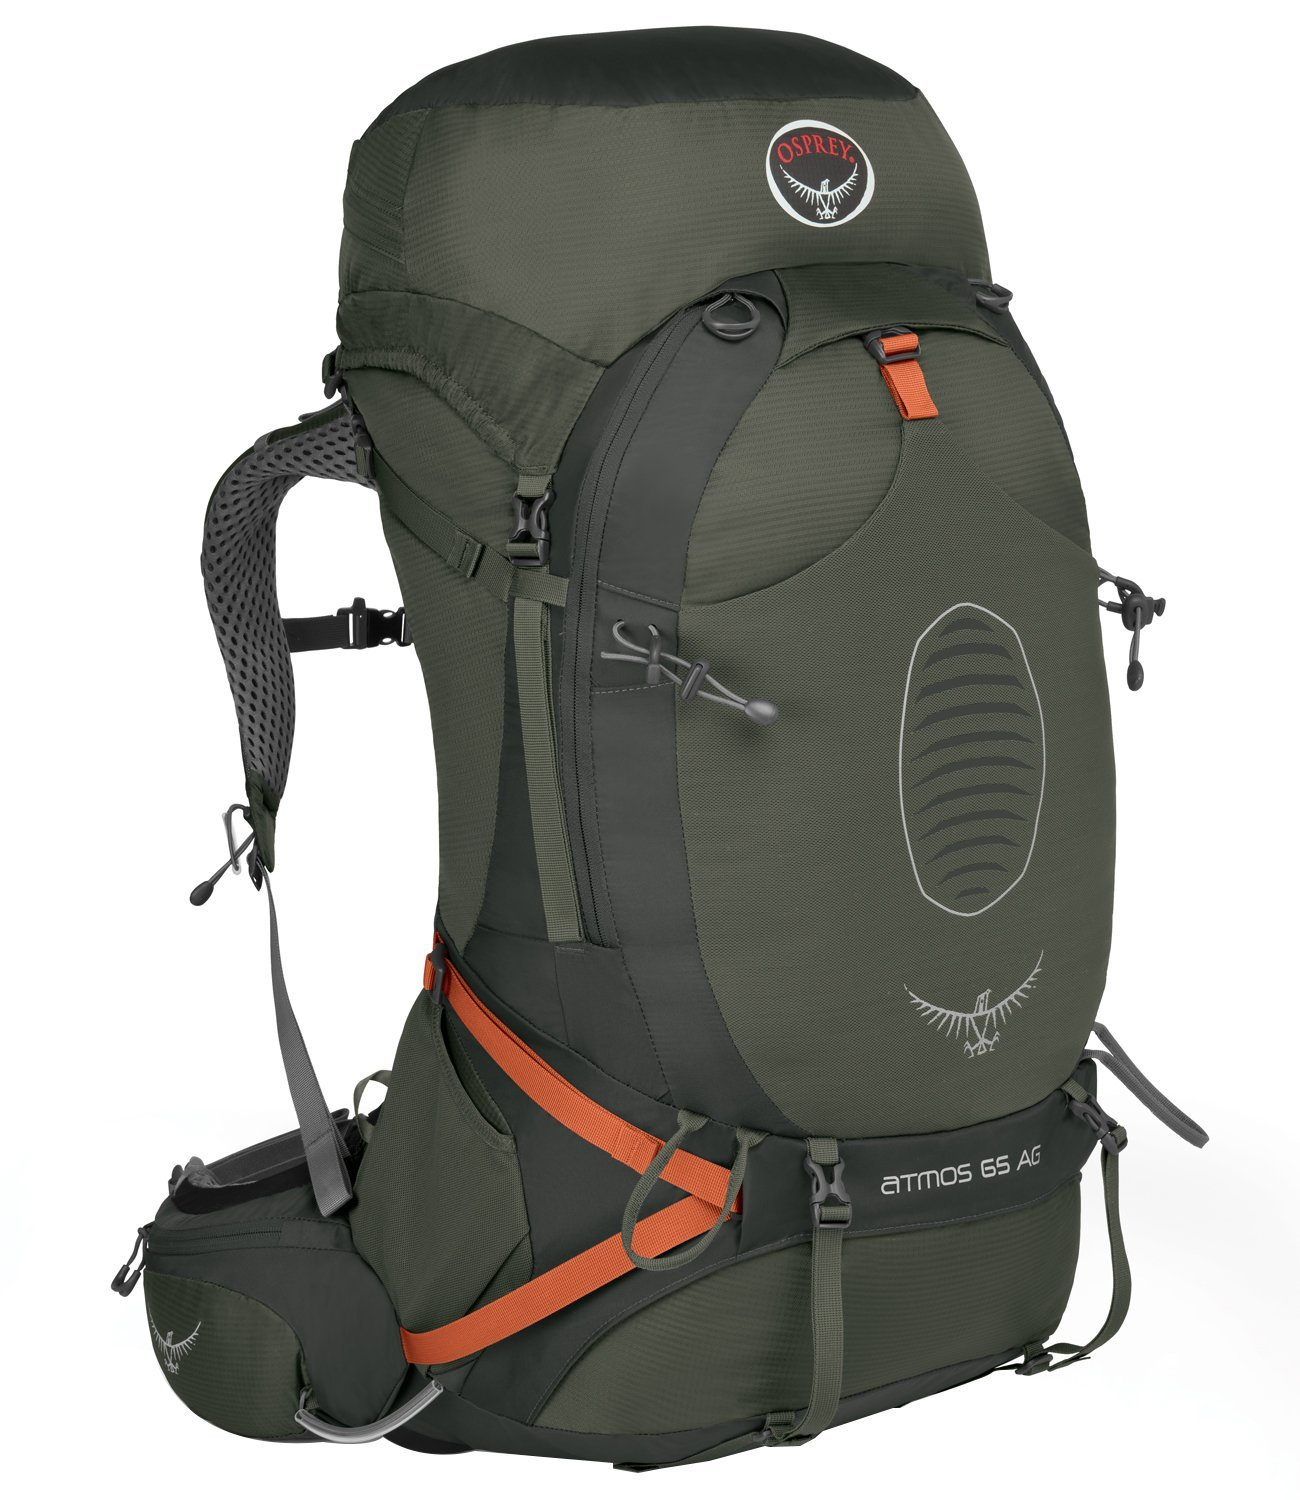 The Osprey Atmos 65 AG is only 3.9 pounds.